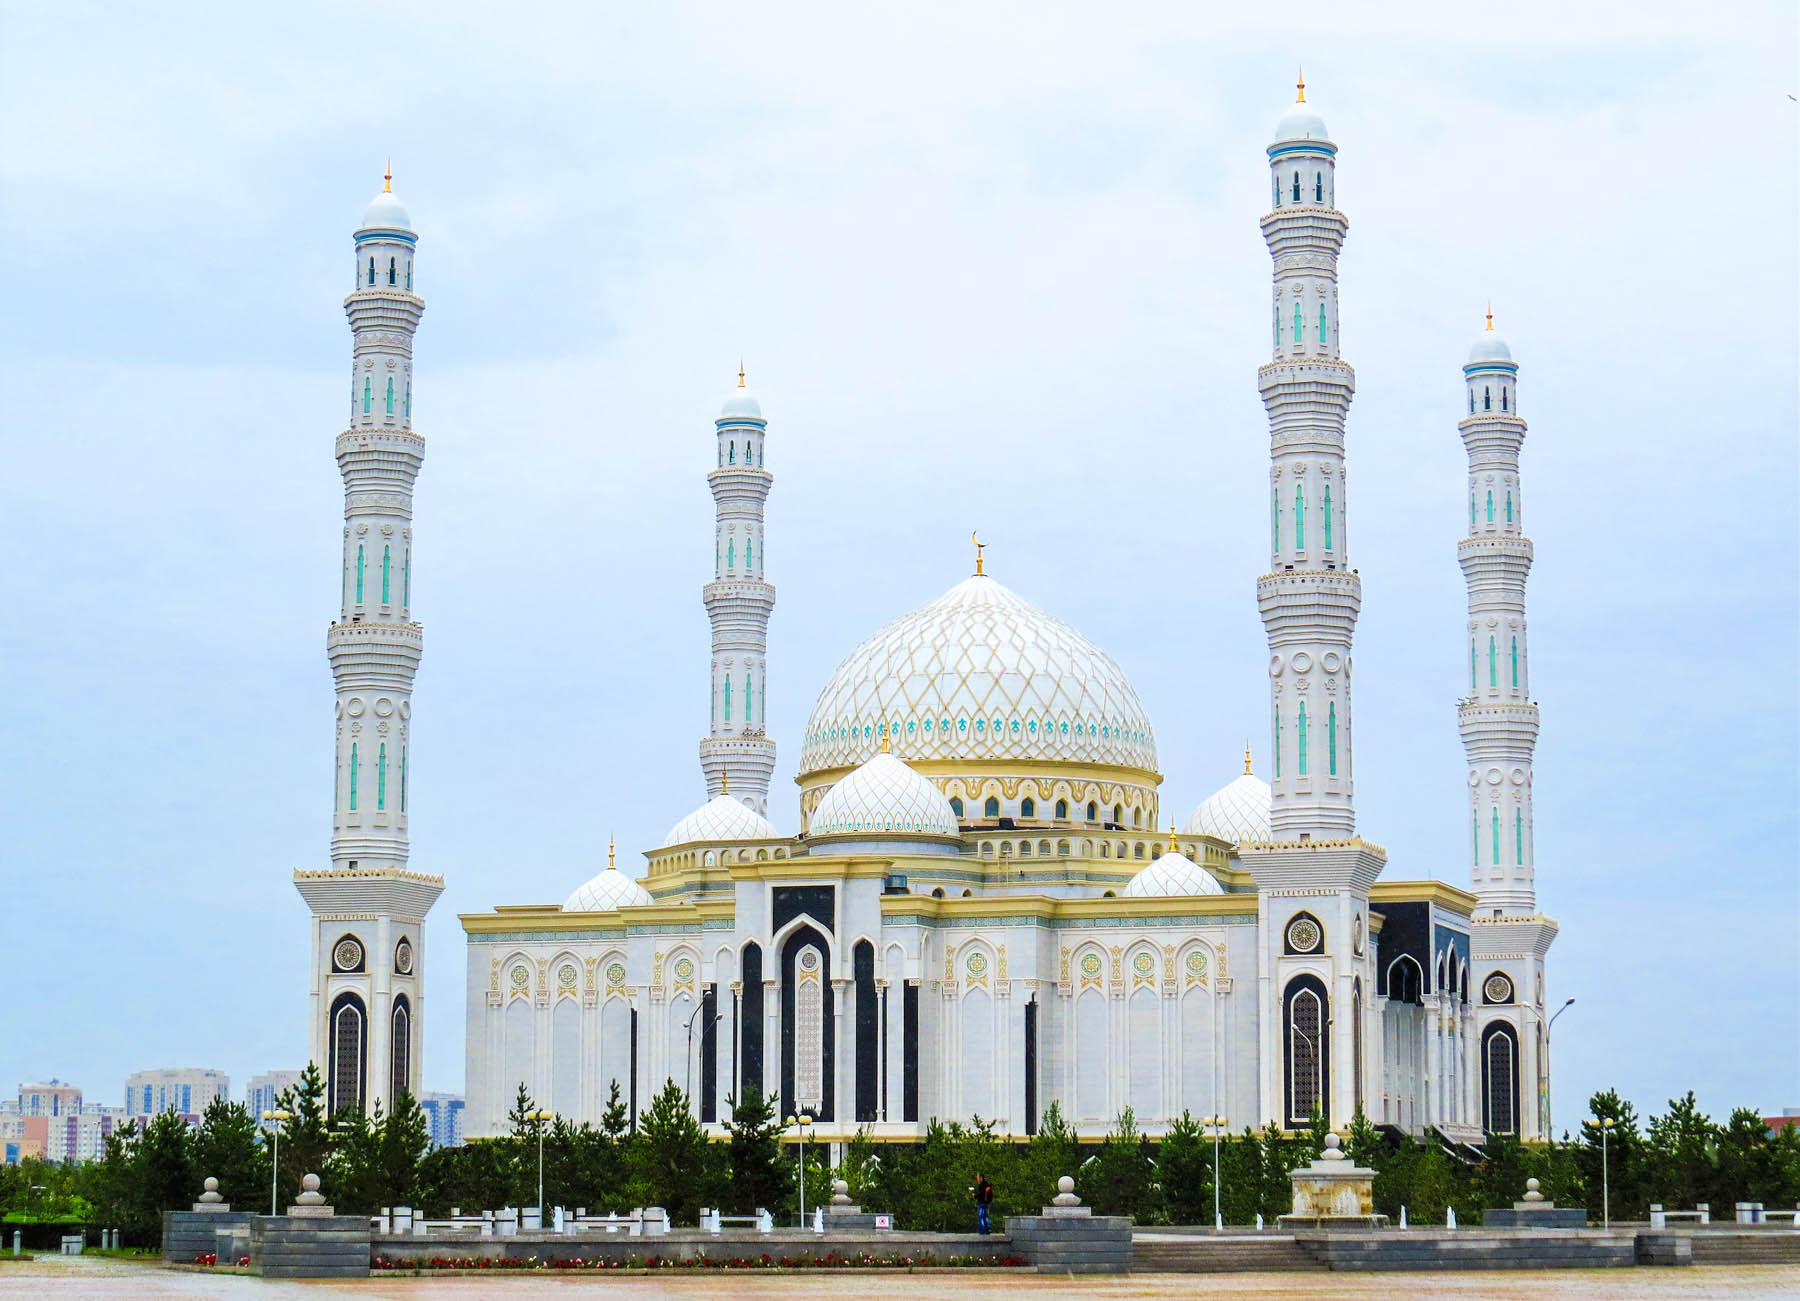 Things to do in Astana, Kazakhstan - The Hazrat Sultan mosque